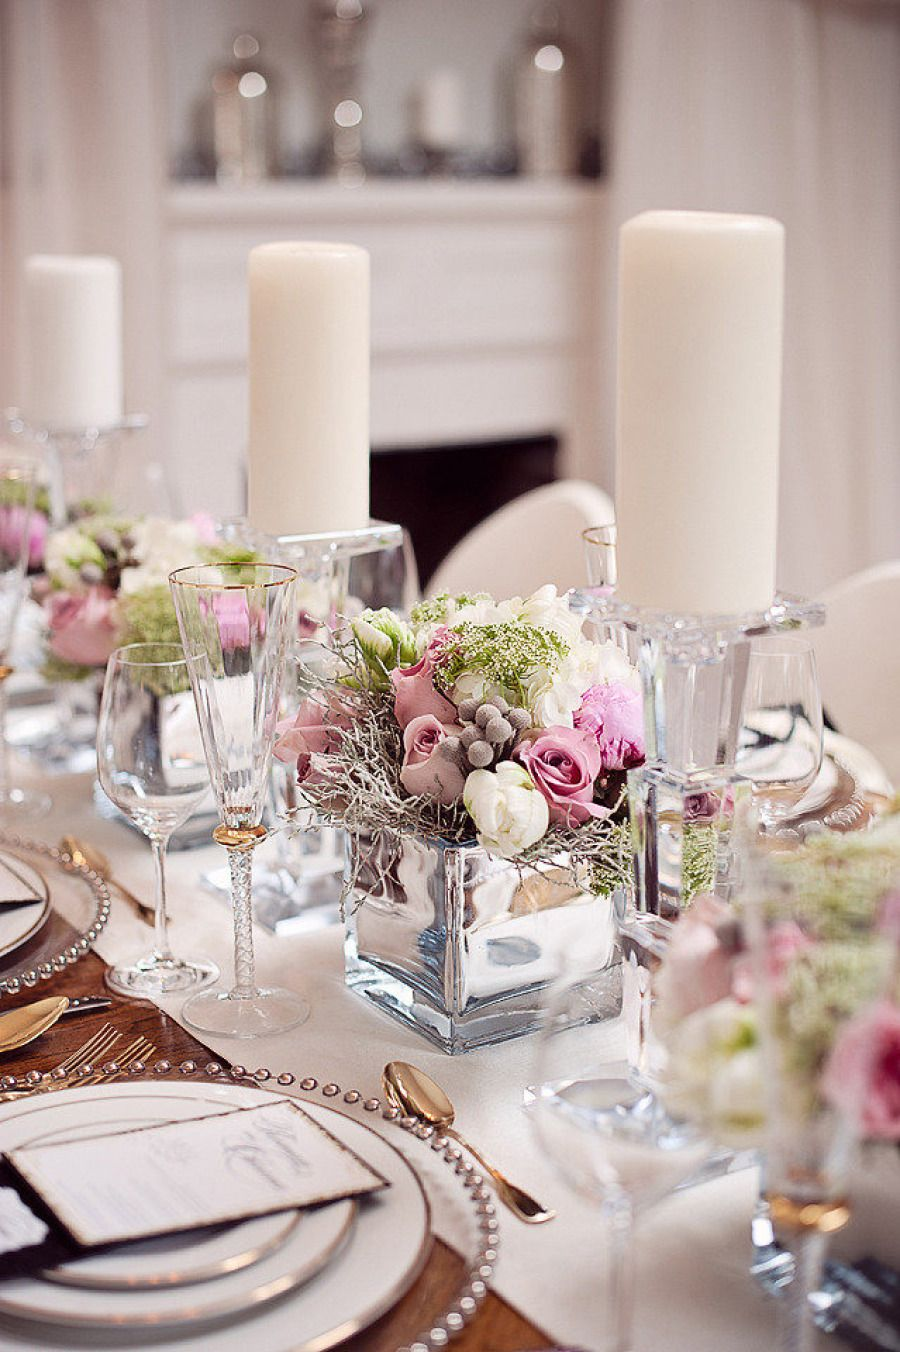 Daily wedding inspiration 48 swoon worthy wedding for Glass tables for wedding reception